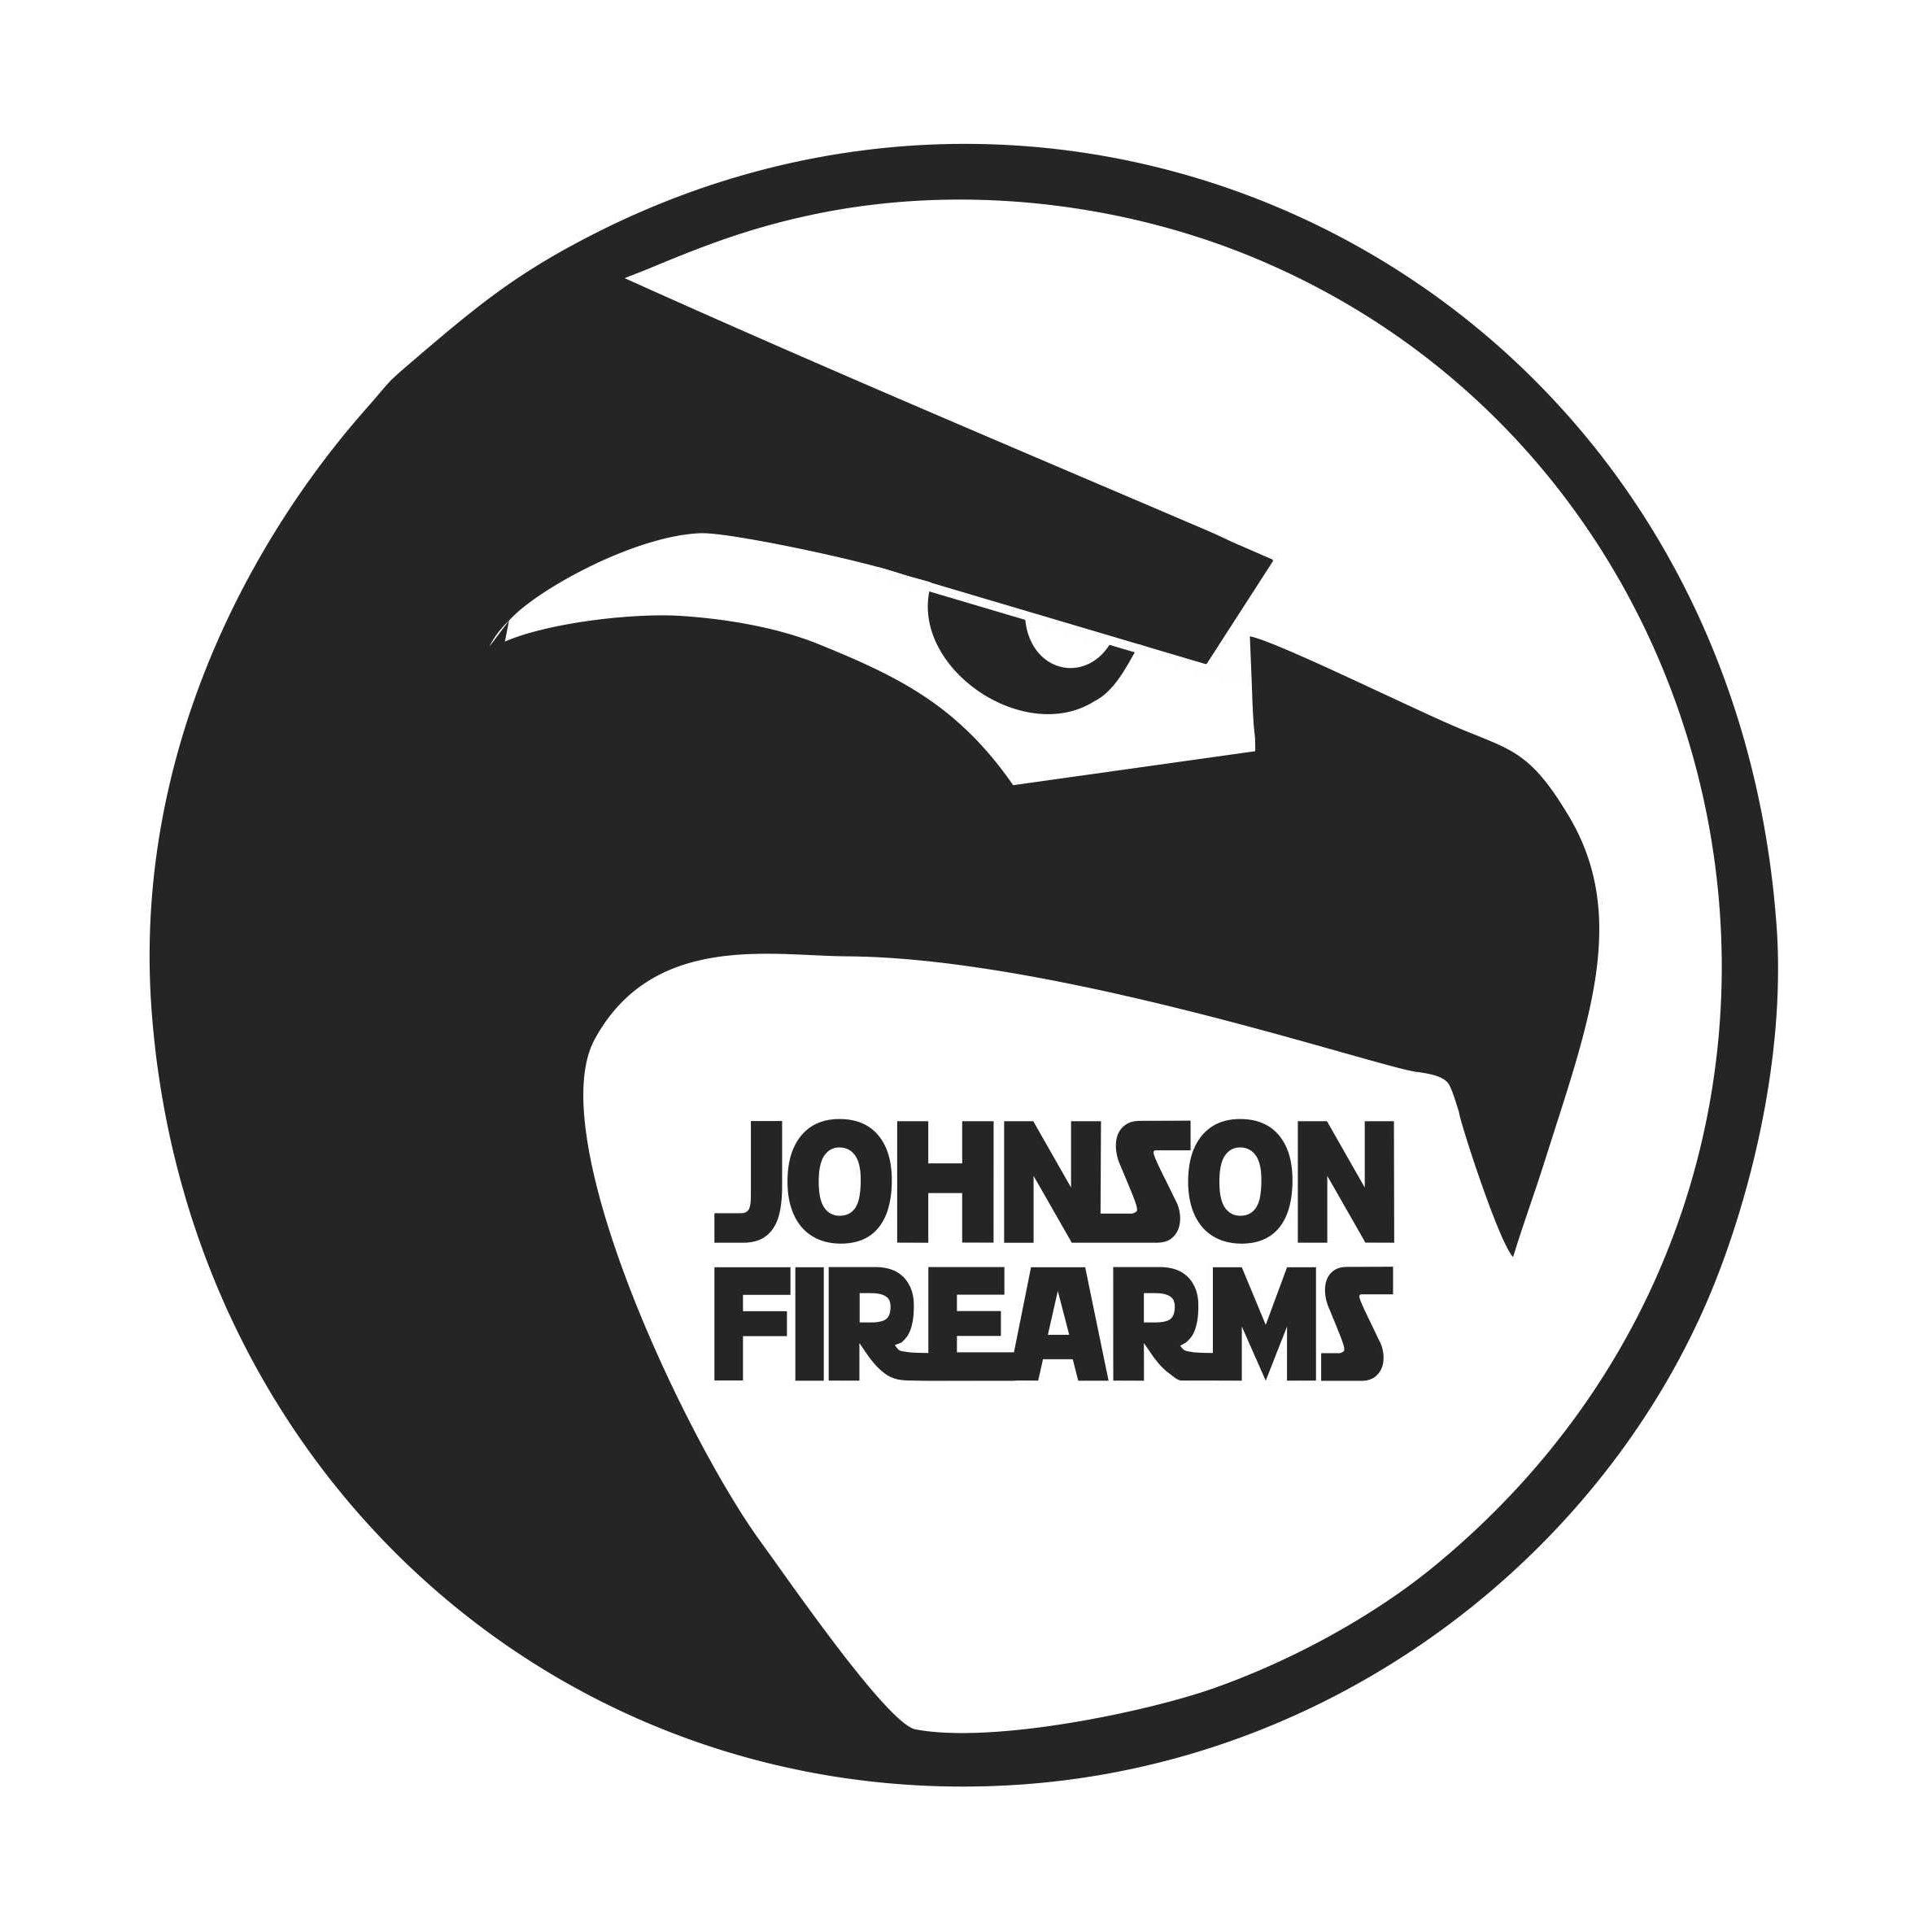 Johnson Firearms - Miami, FL 33127 - (305)395-3995 | ShowMeLocal.com